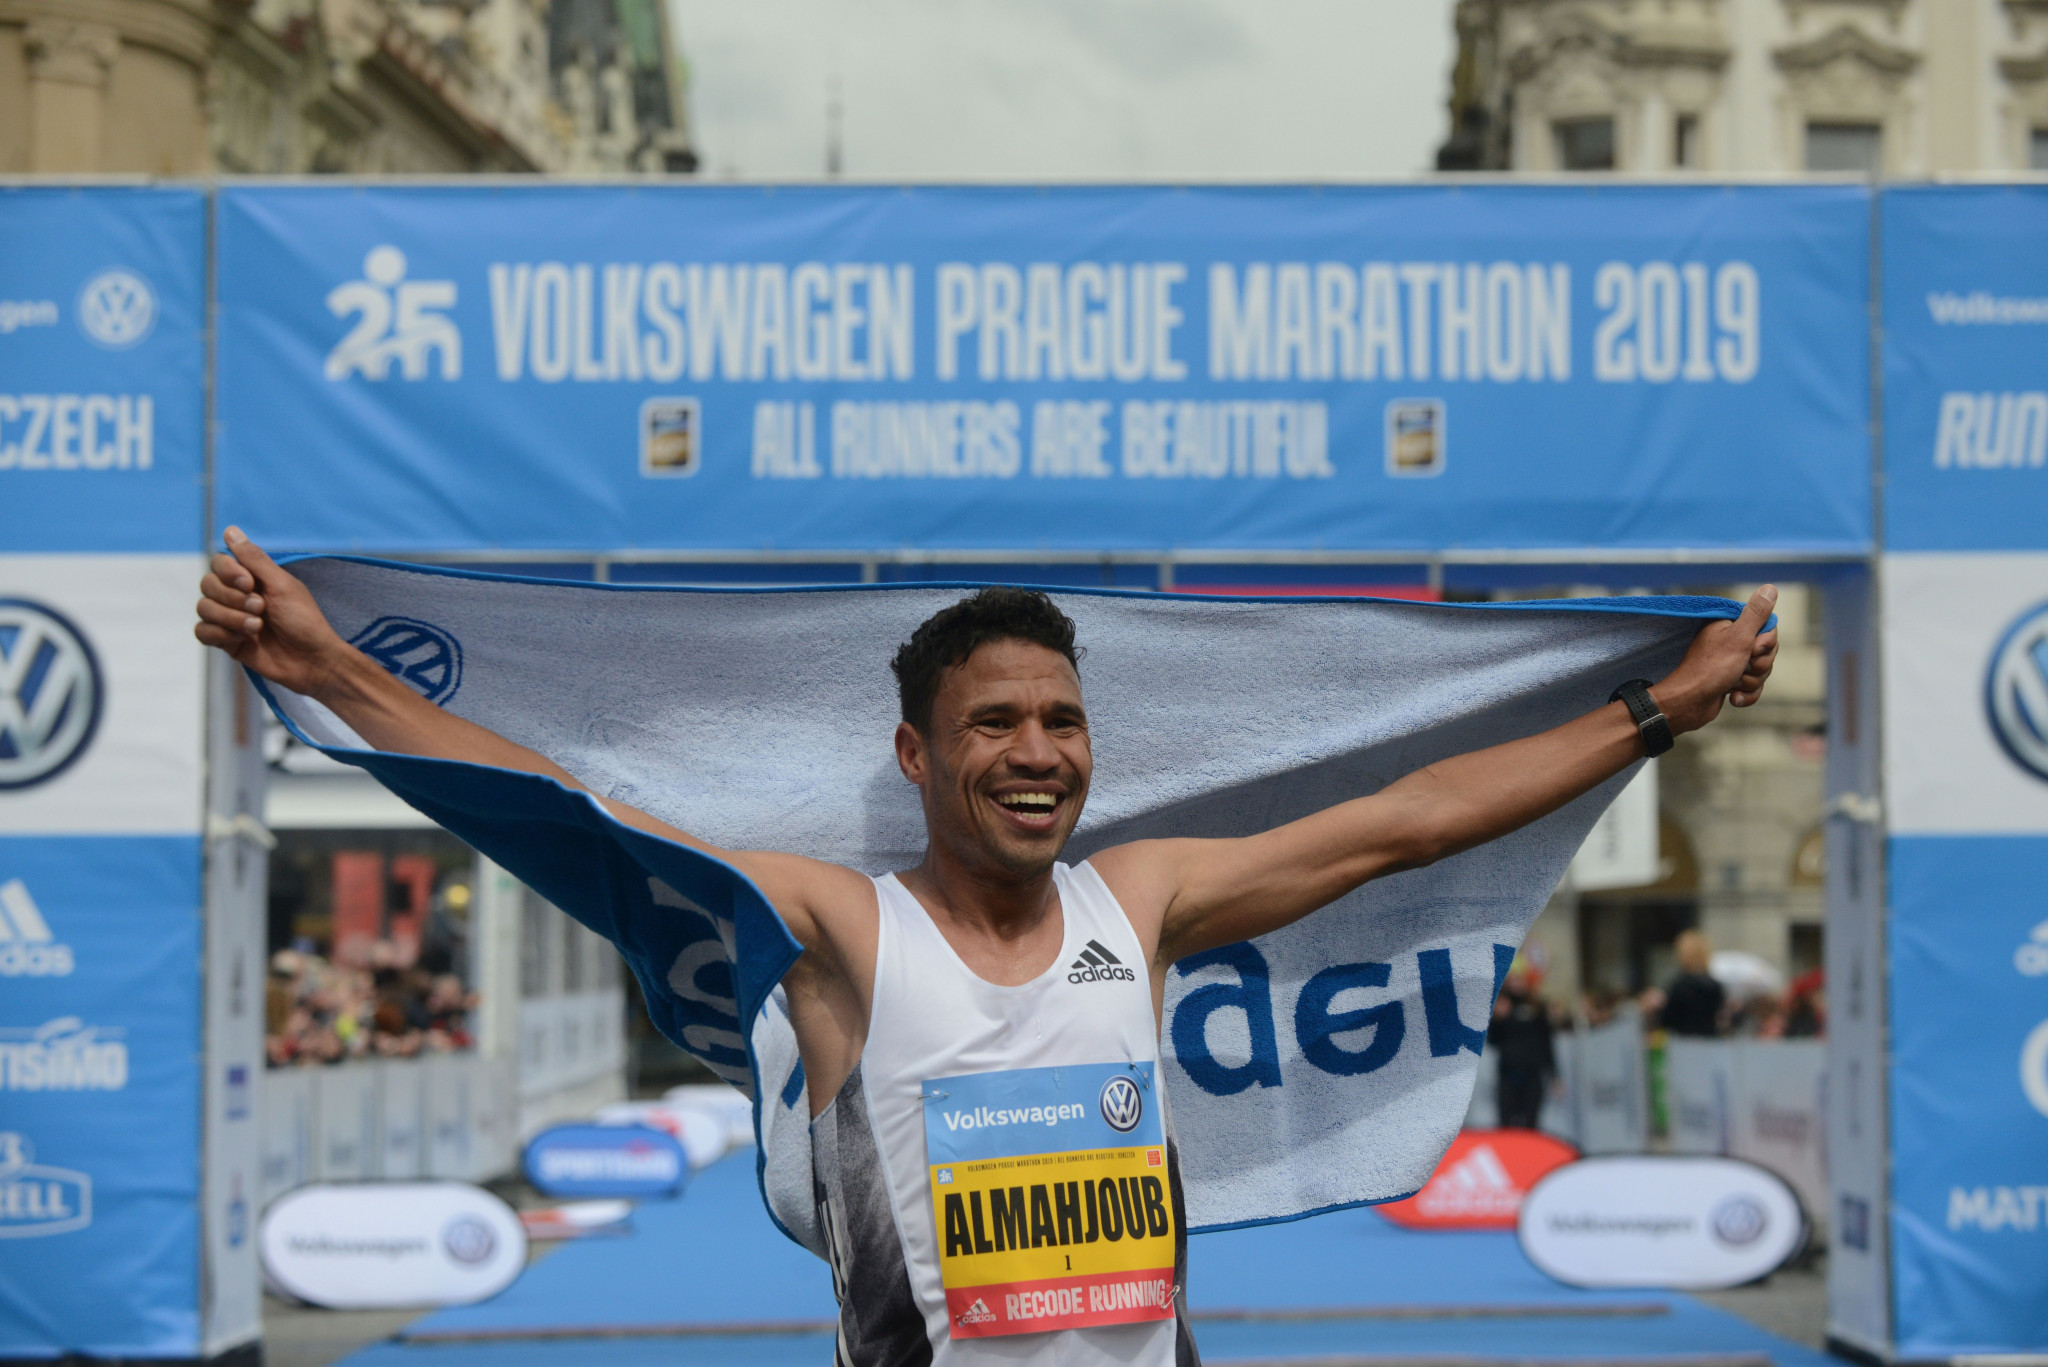 Moroccan marathon runner Dazza provisionally suspended by Athletics Integrity Unit